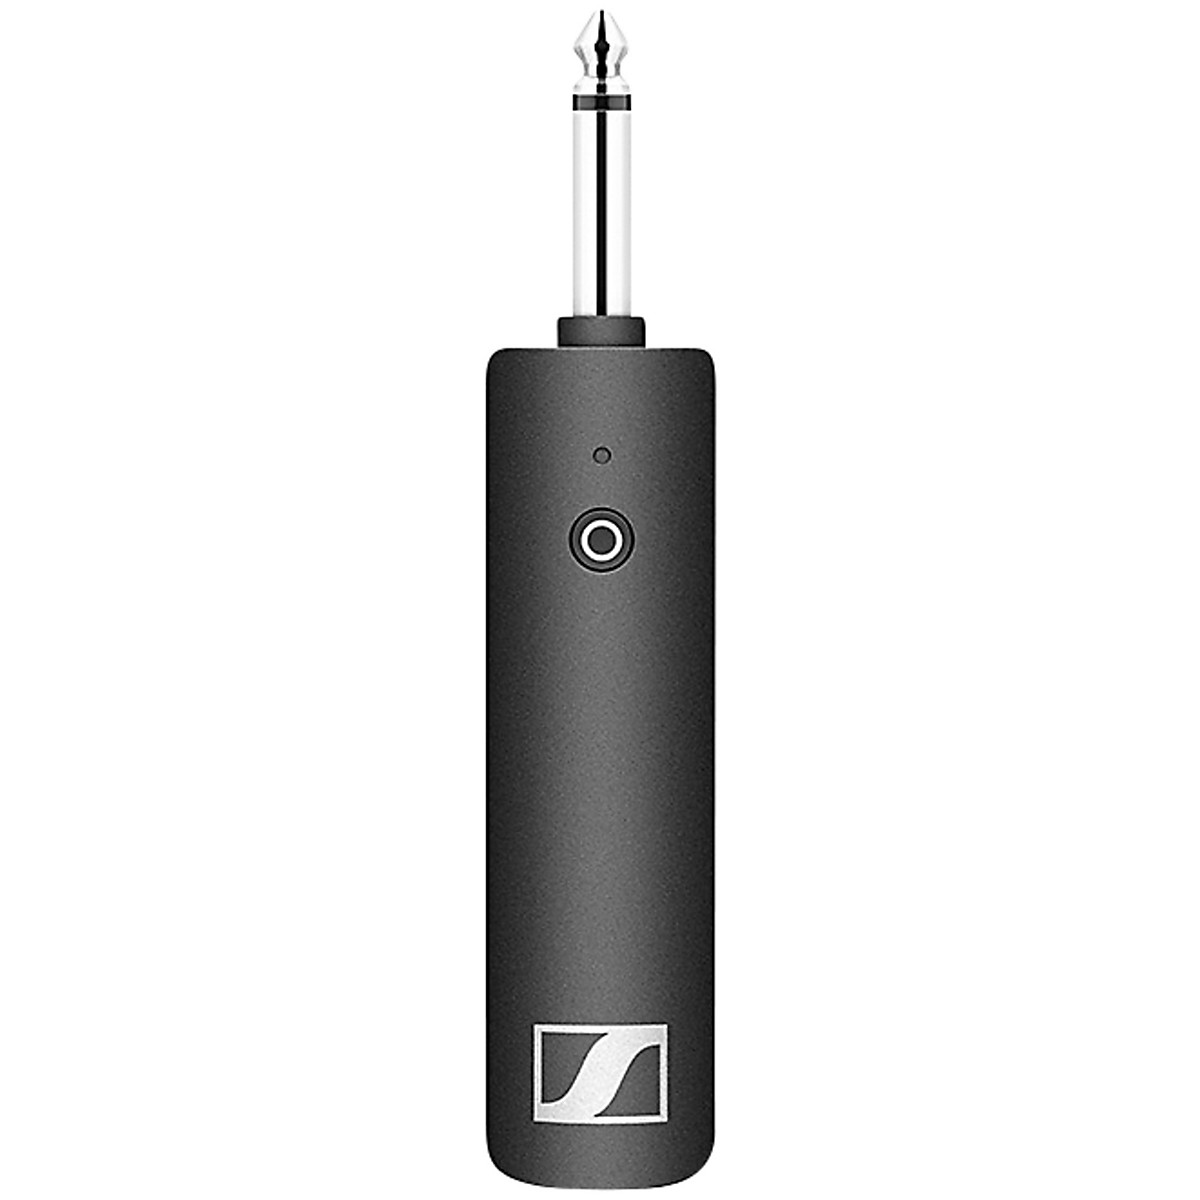 Sennheiser XSW-D INSTRUMENT TX Wireless Digital transmitter (only) with jack (6.3mm, 1/4